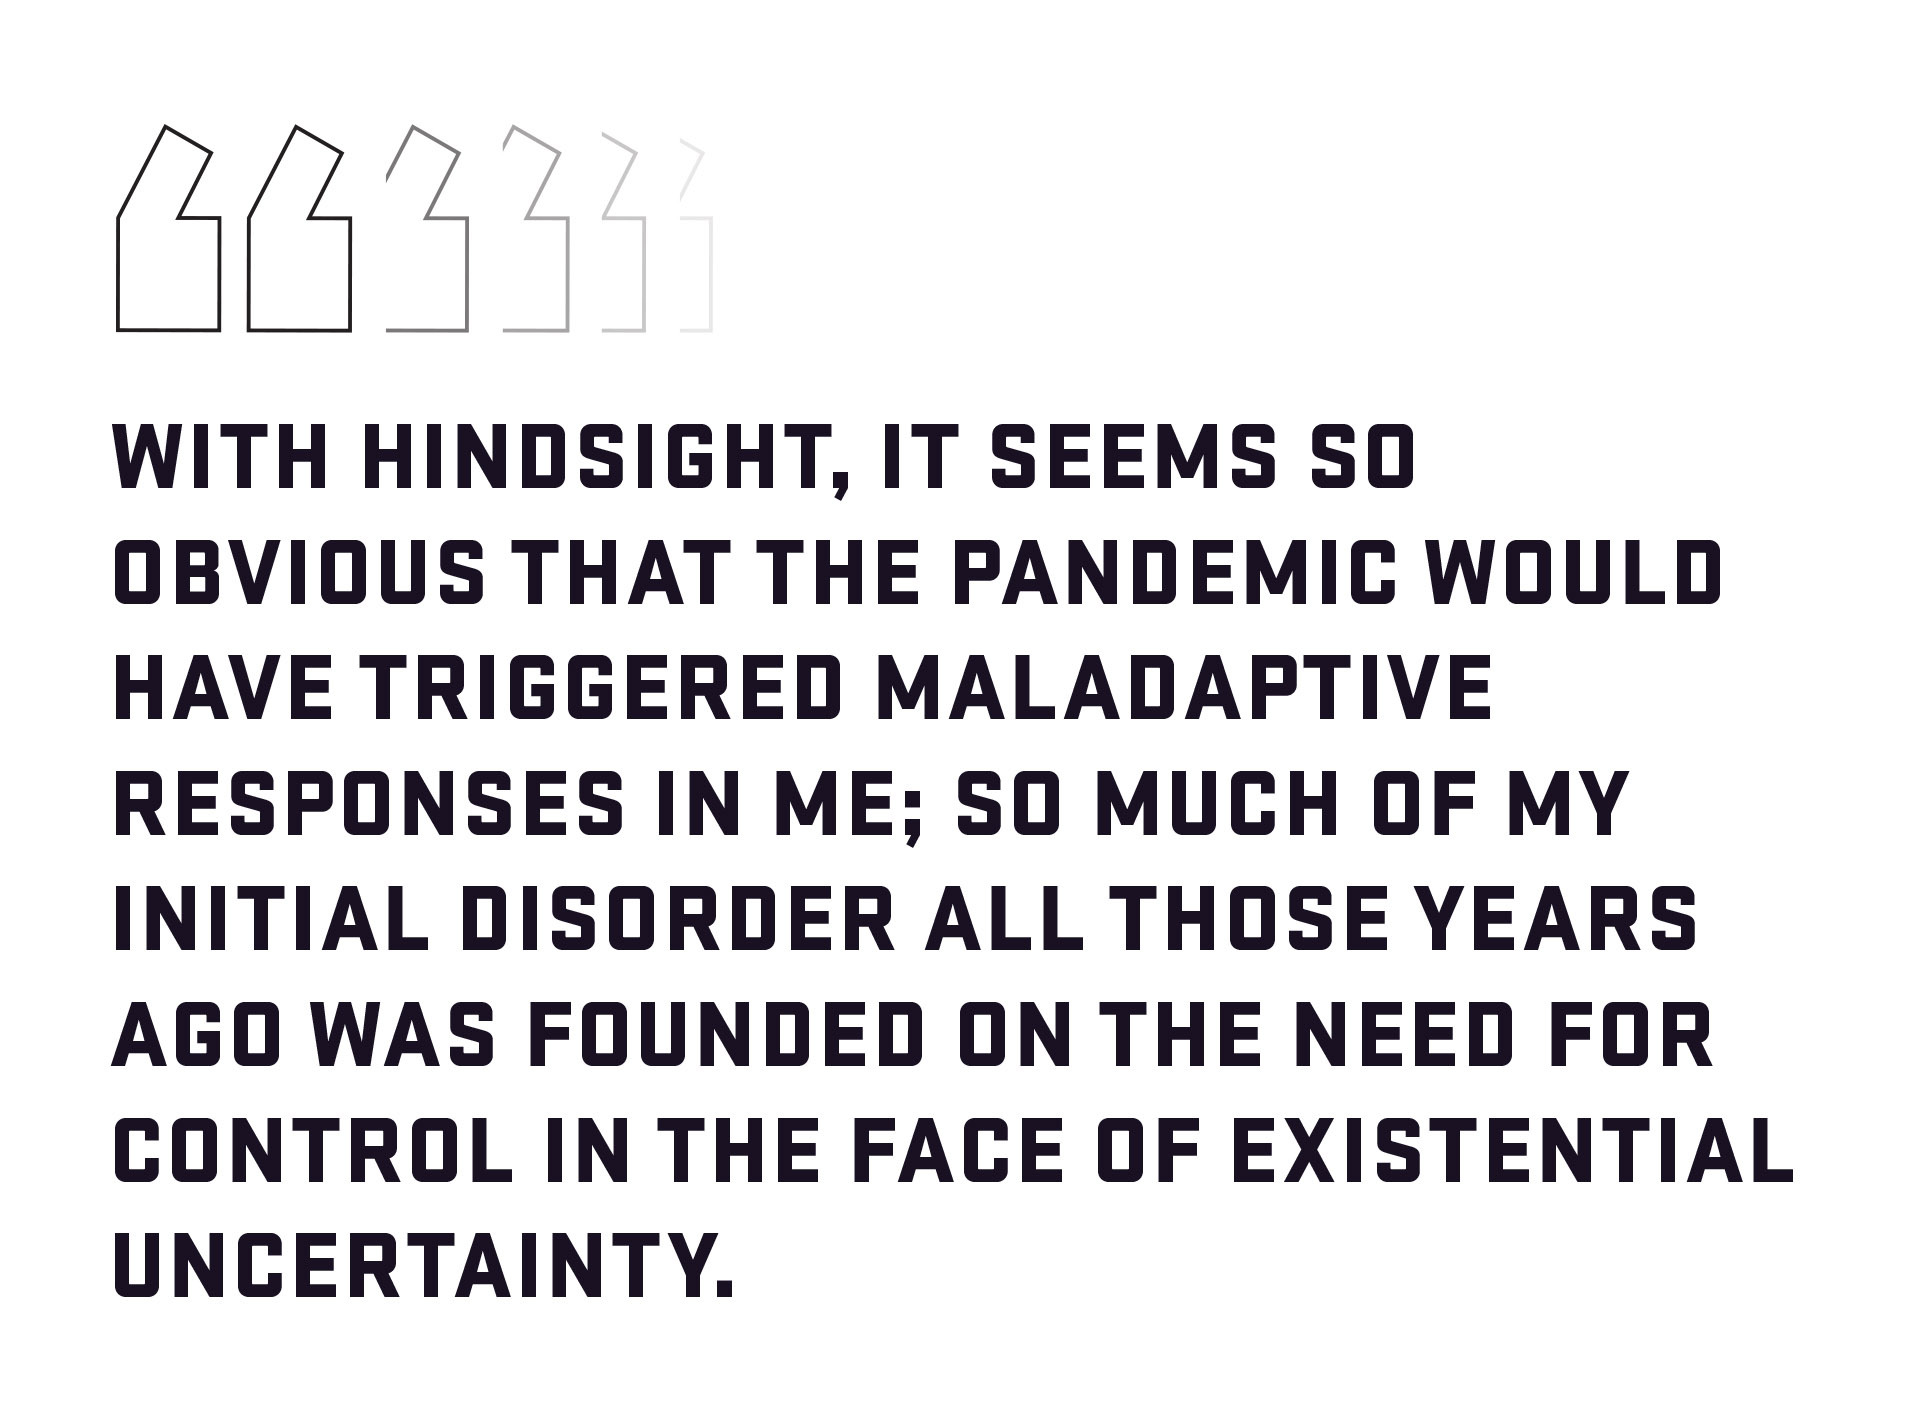 Block quote: With hindsight, it seems so obvious that the pandemic would have triggered maladaptive responses in me; so much of my initial disorder all those years ago was founded on the need for control in the face of existential uncertainty.